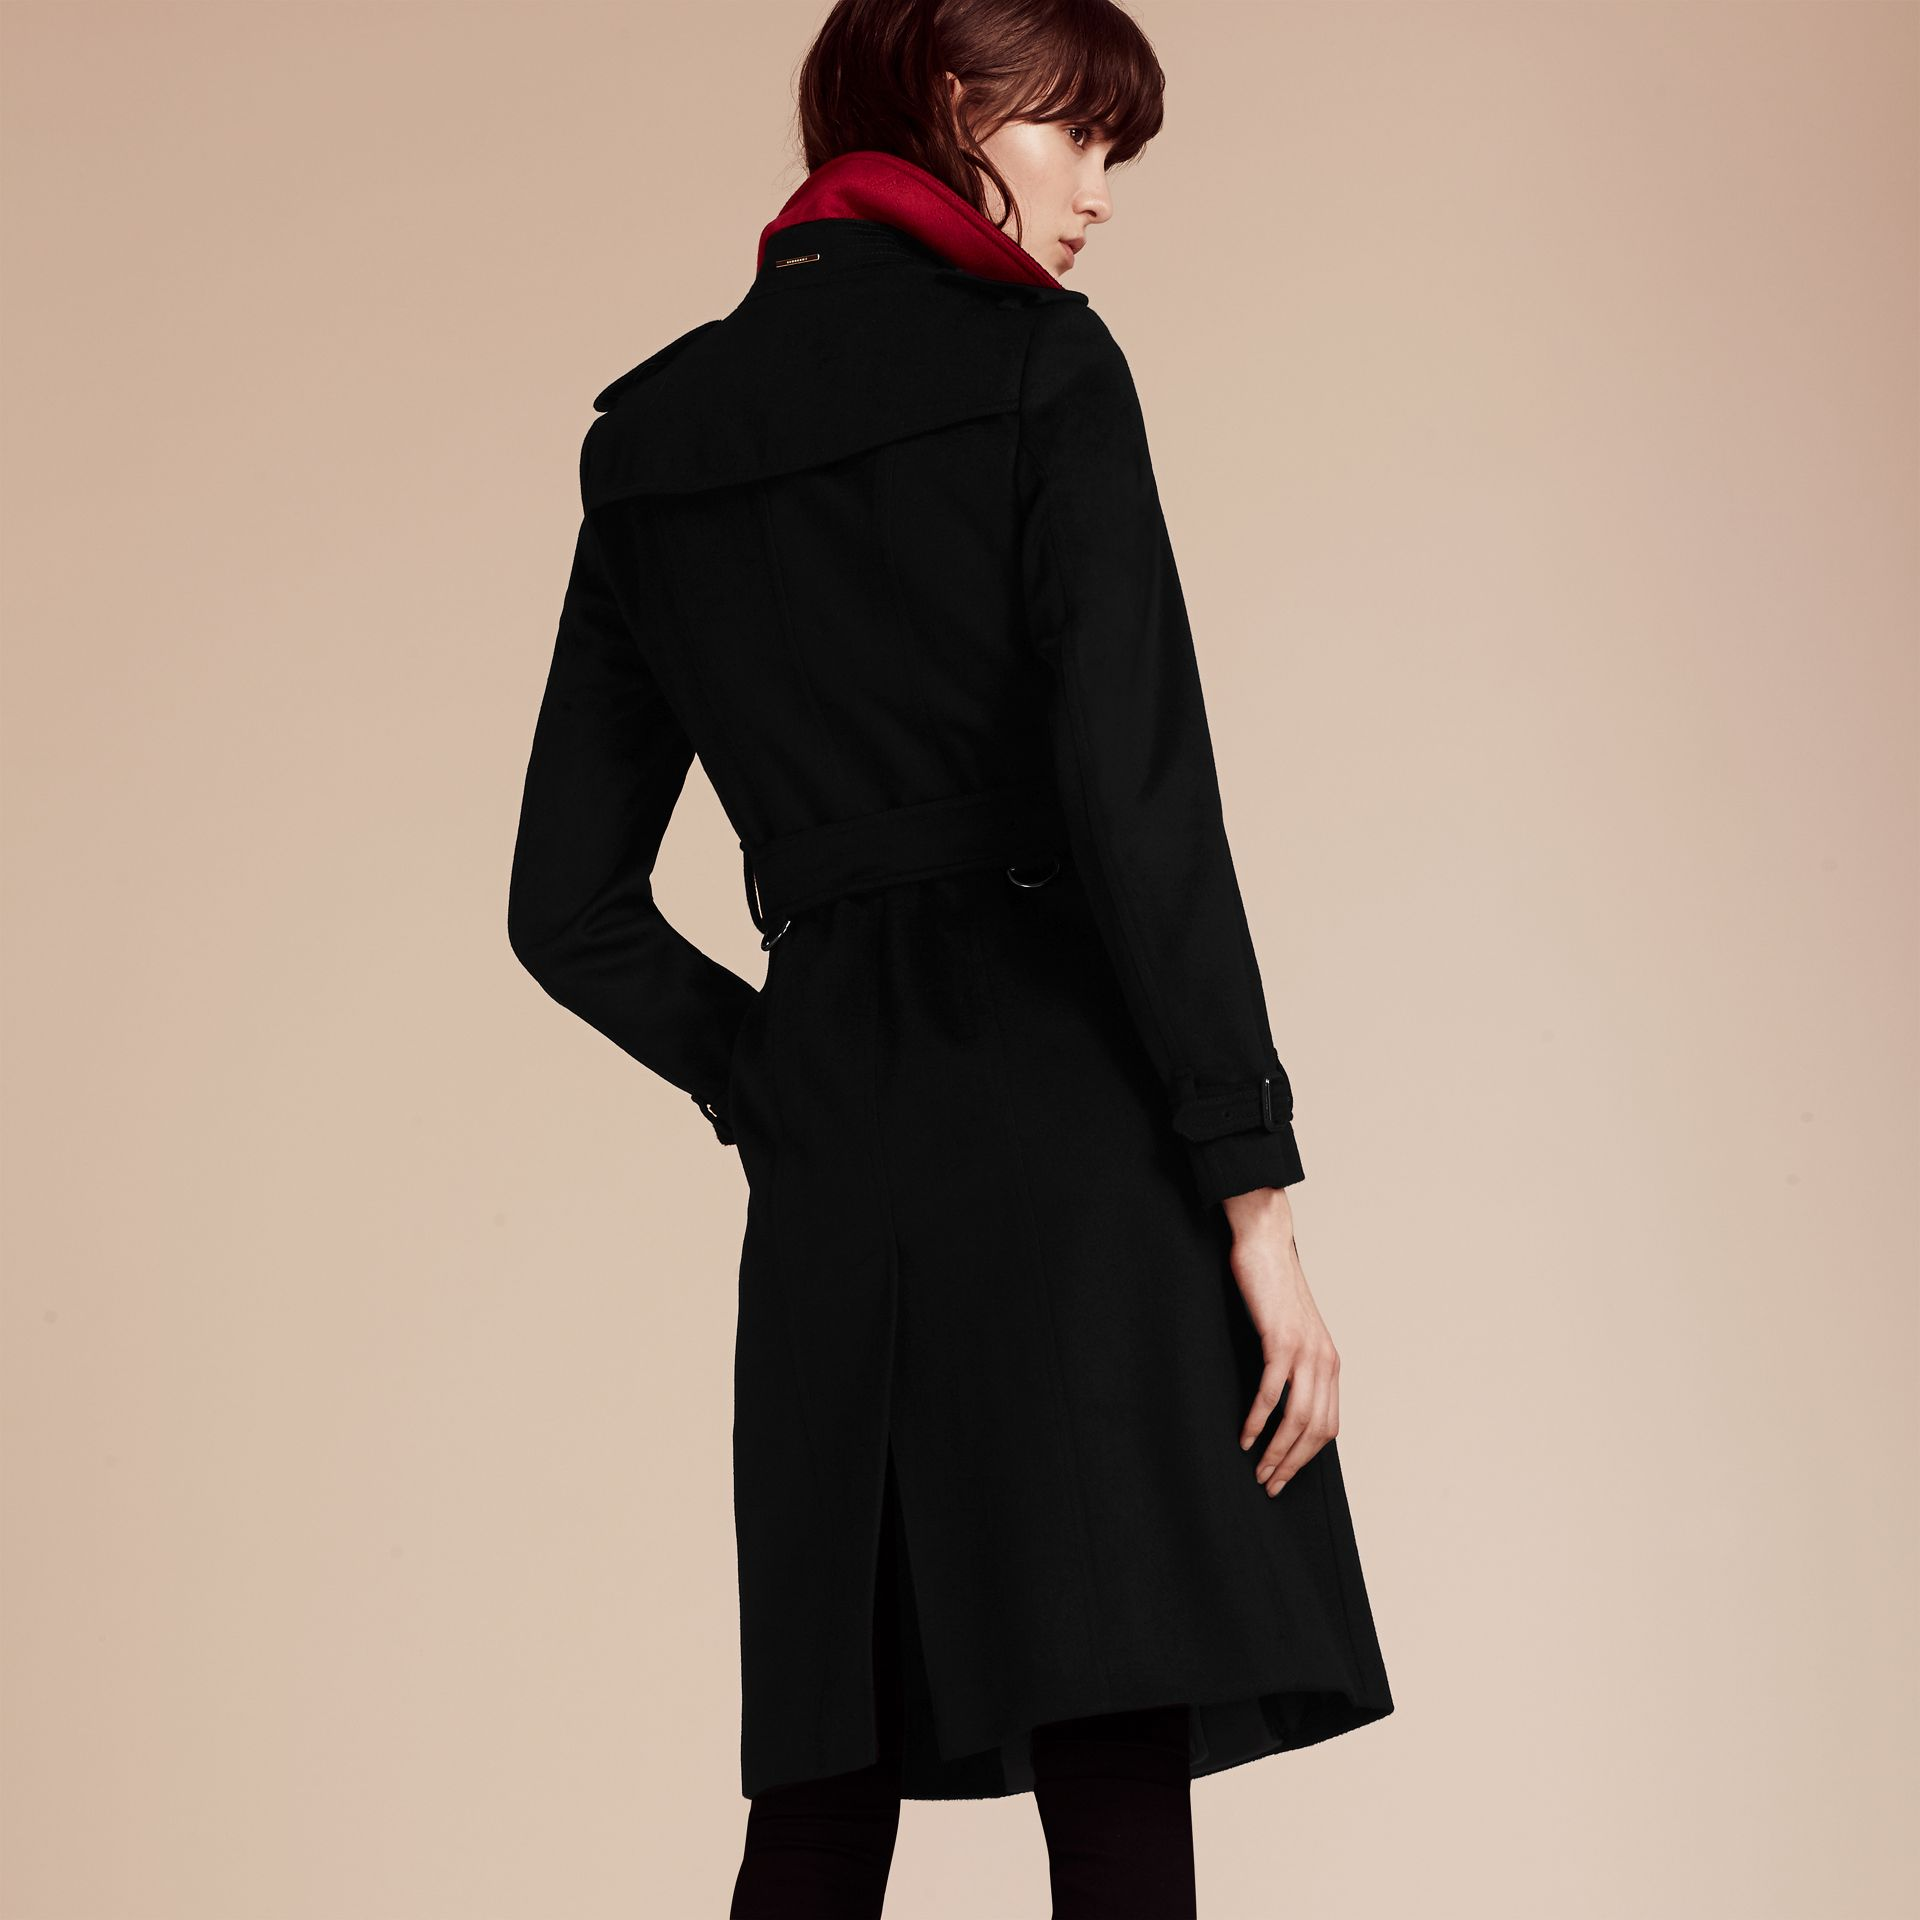 Noir Trench-coat en cachemire de coupe slim - photo de la galerie 4